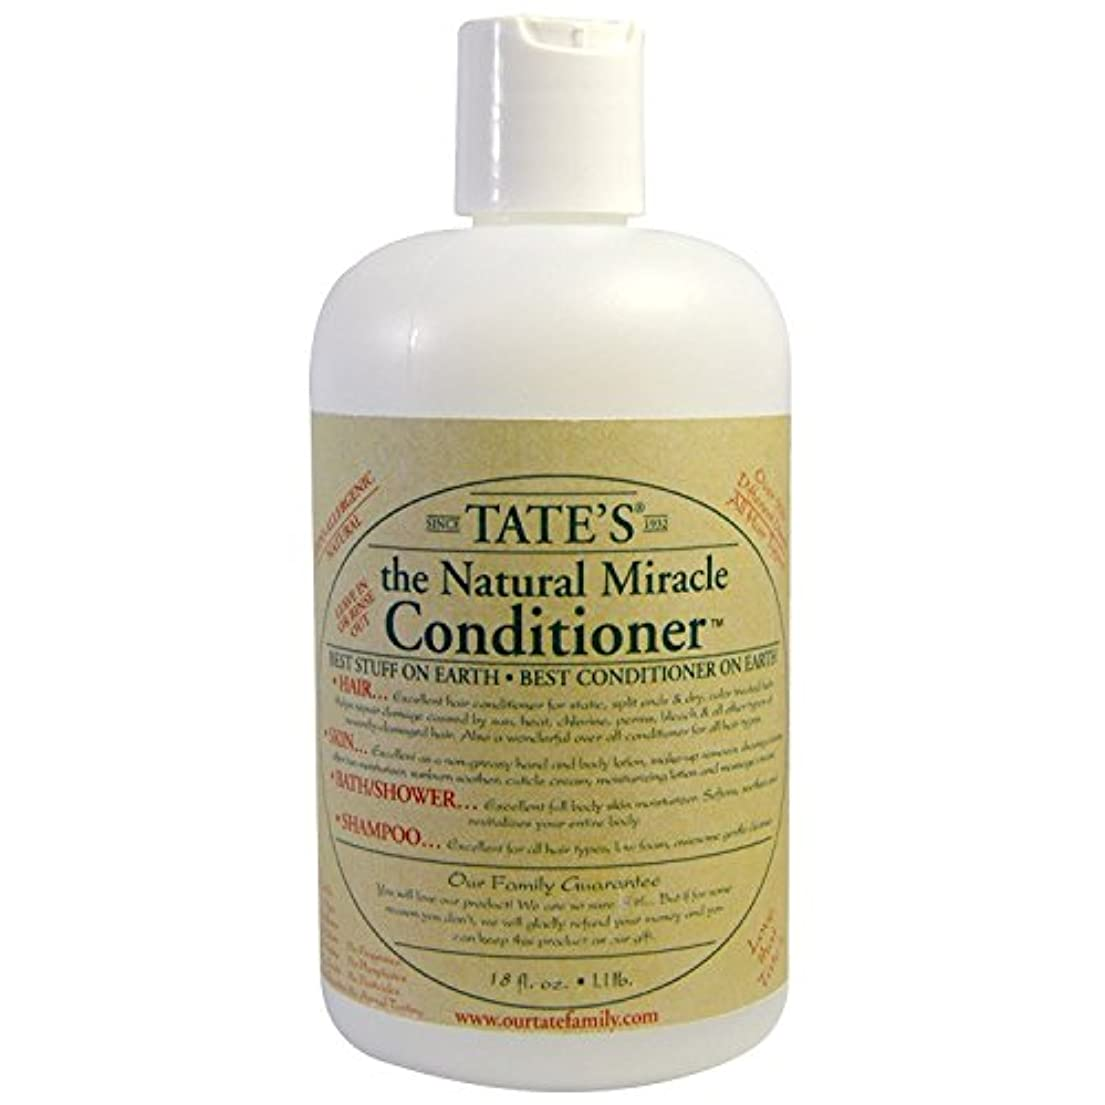 Tate's, The Natural Miracle Conditioner, 16 fl oz